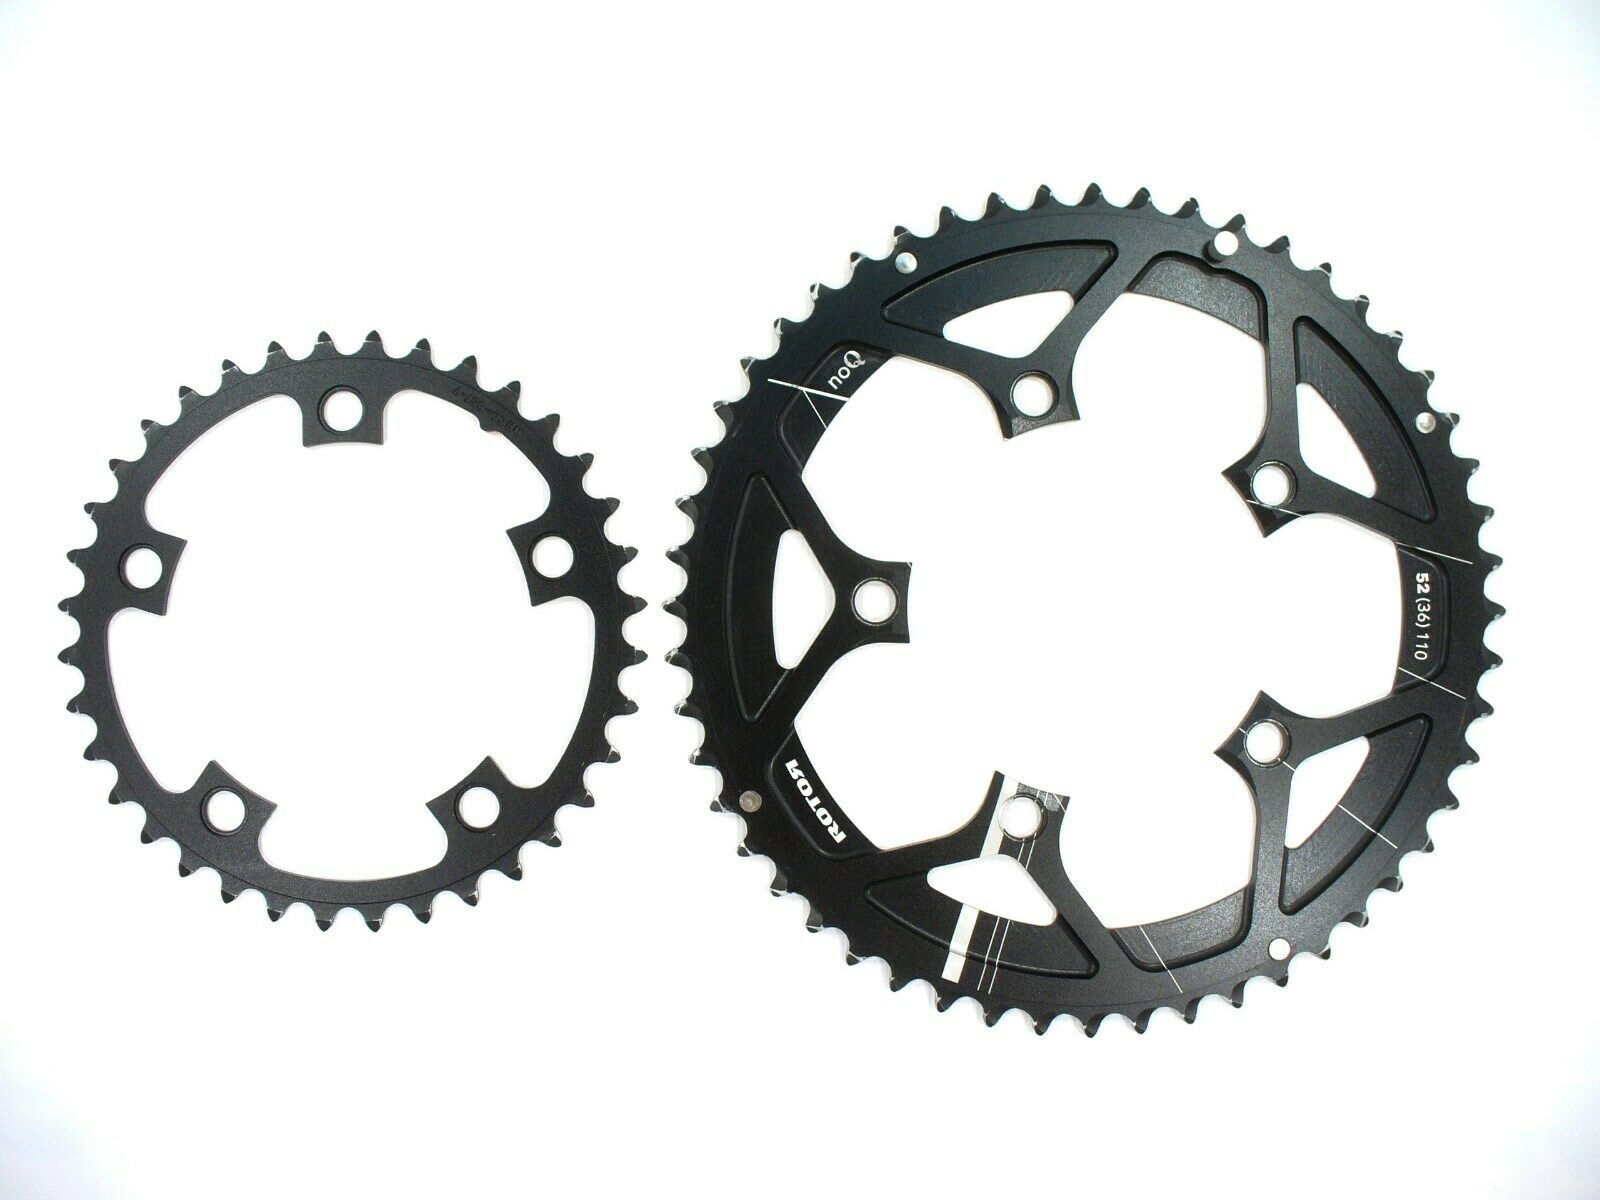 Rotor noQ 52t 36t Semi-Compact Road Racing Chainrings Sprocket set 10 11-speed